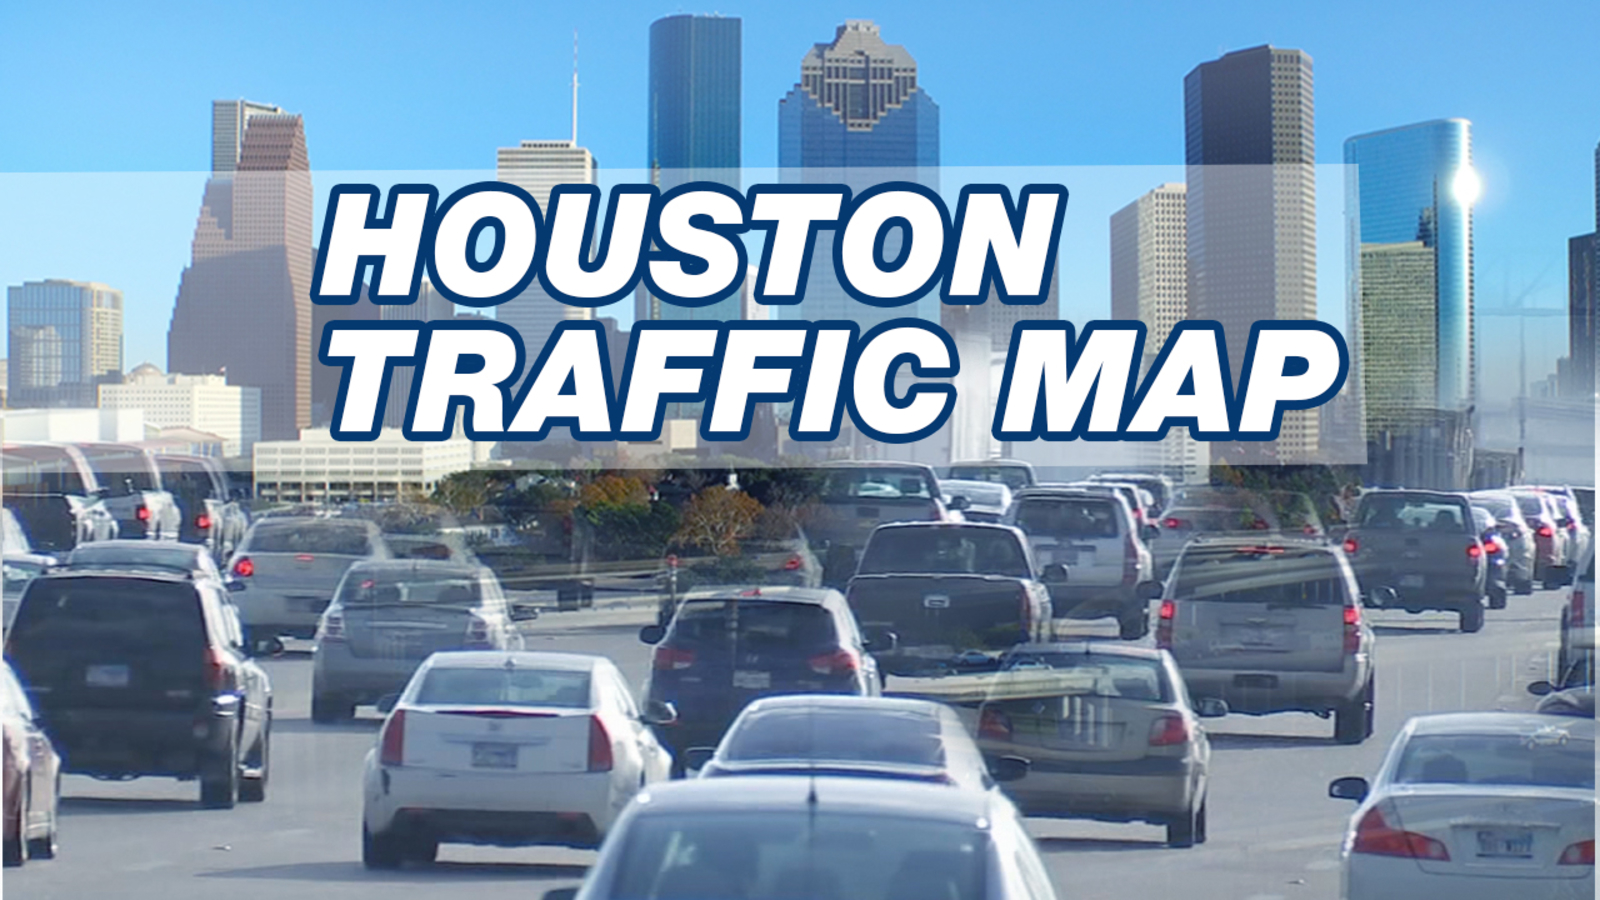 Houston Realtime Traffic Map HOUSTON TRAFFIC: Check Houston traffic map for current road